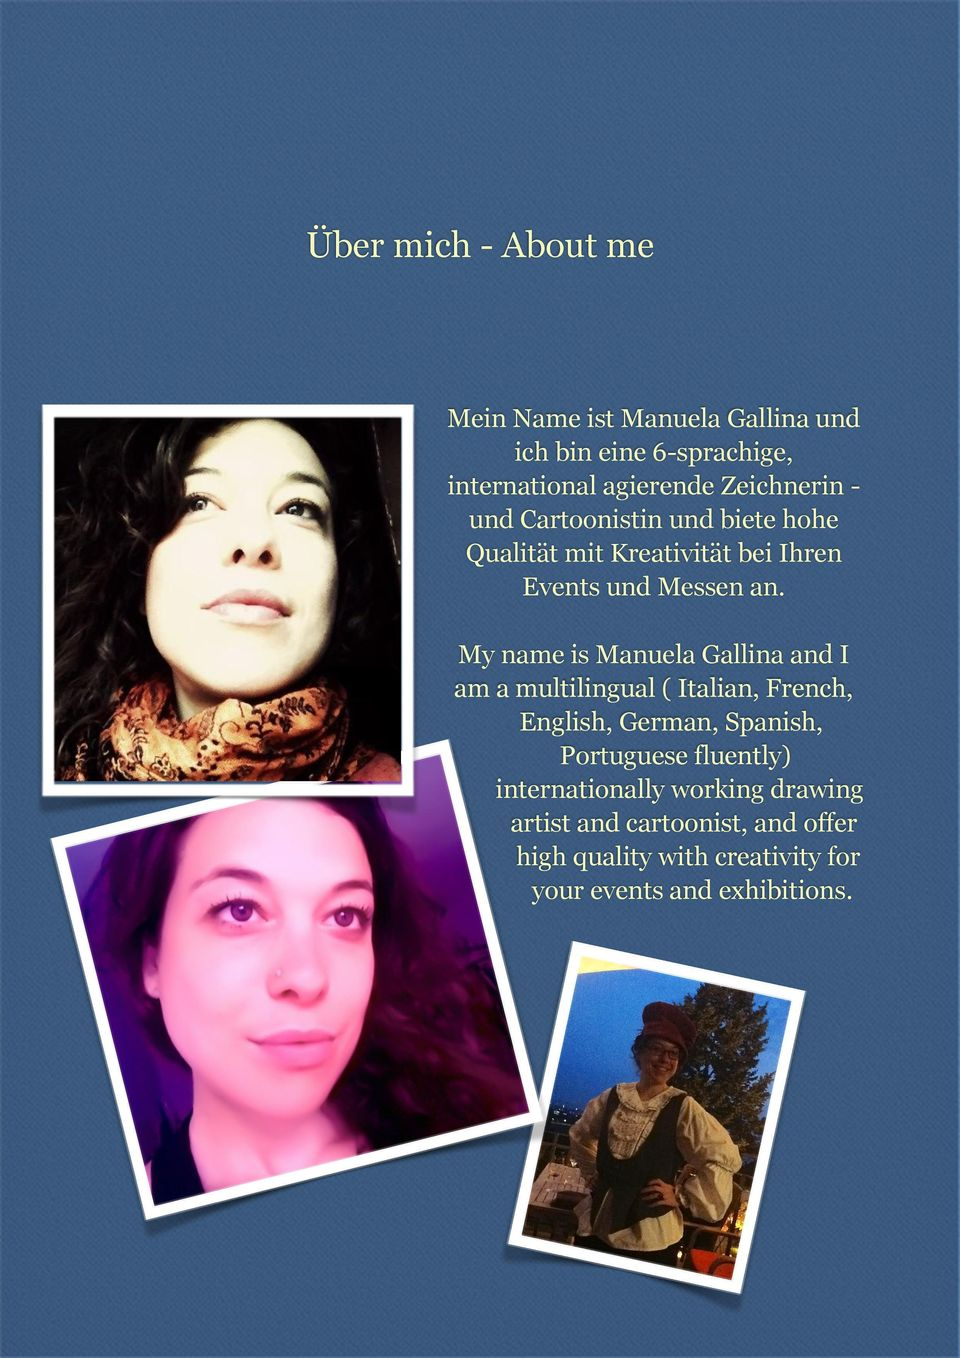 My name is Manuela Gallina and I am a multilingual ( Italian, French, English, German, Spanish, Portuguese